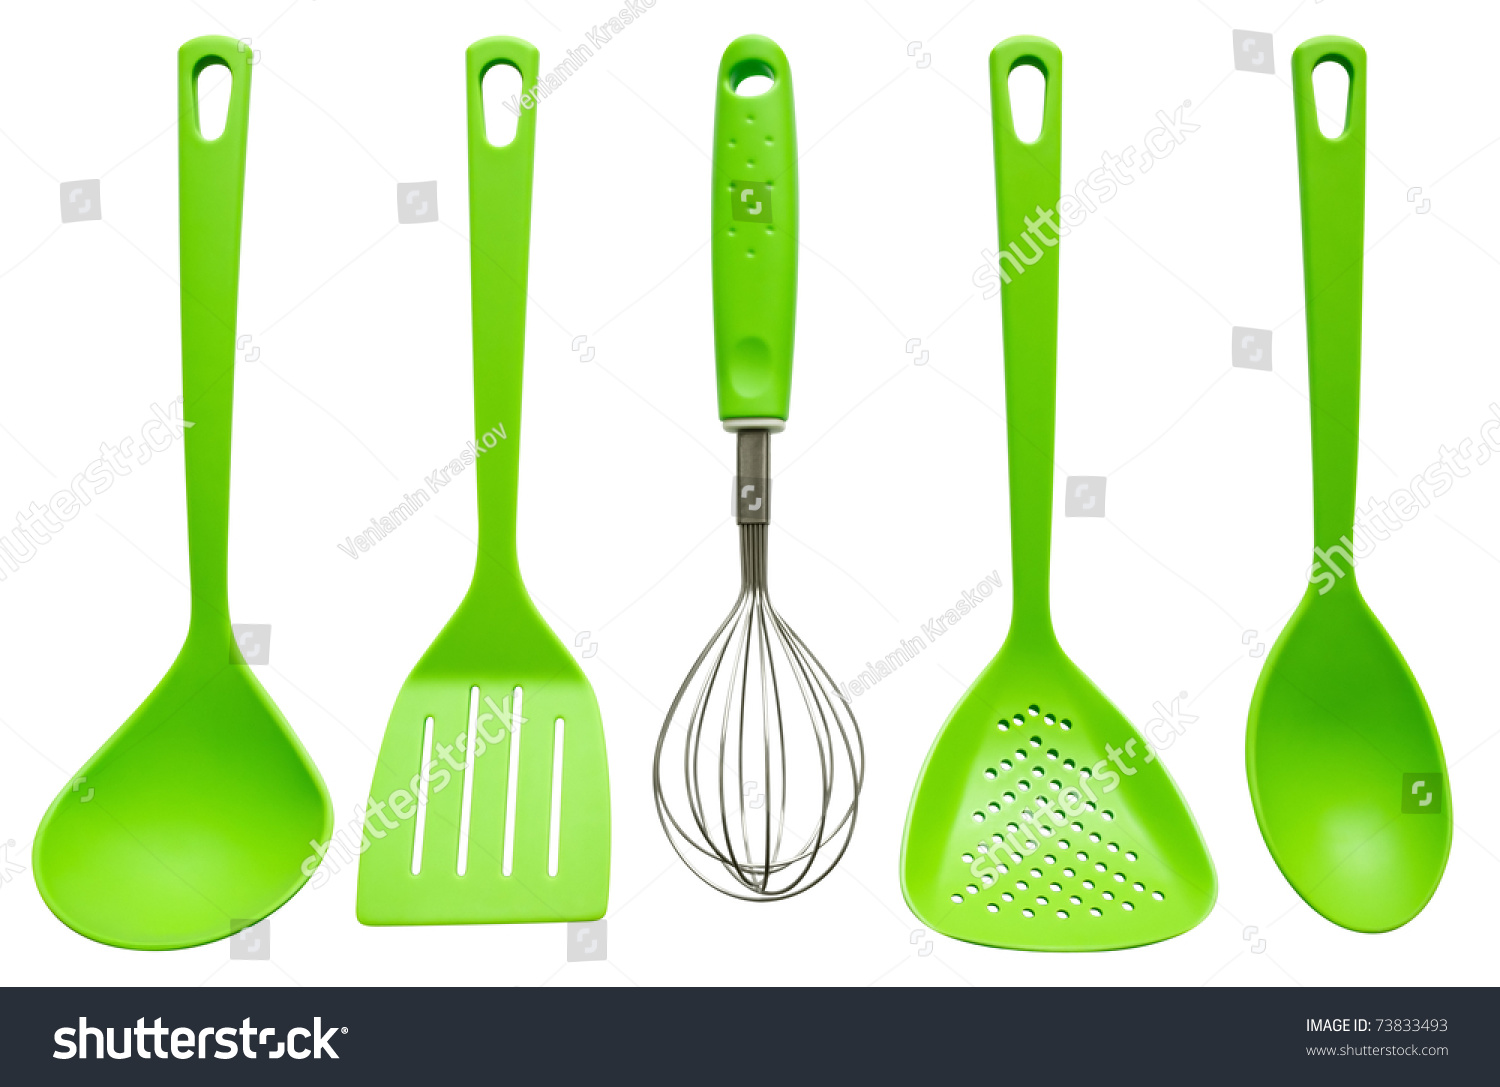 Plastic Kitchen Utensils Isolated On White Stock Photo (Royalty Free)  73833493   Shutterstock